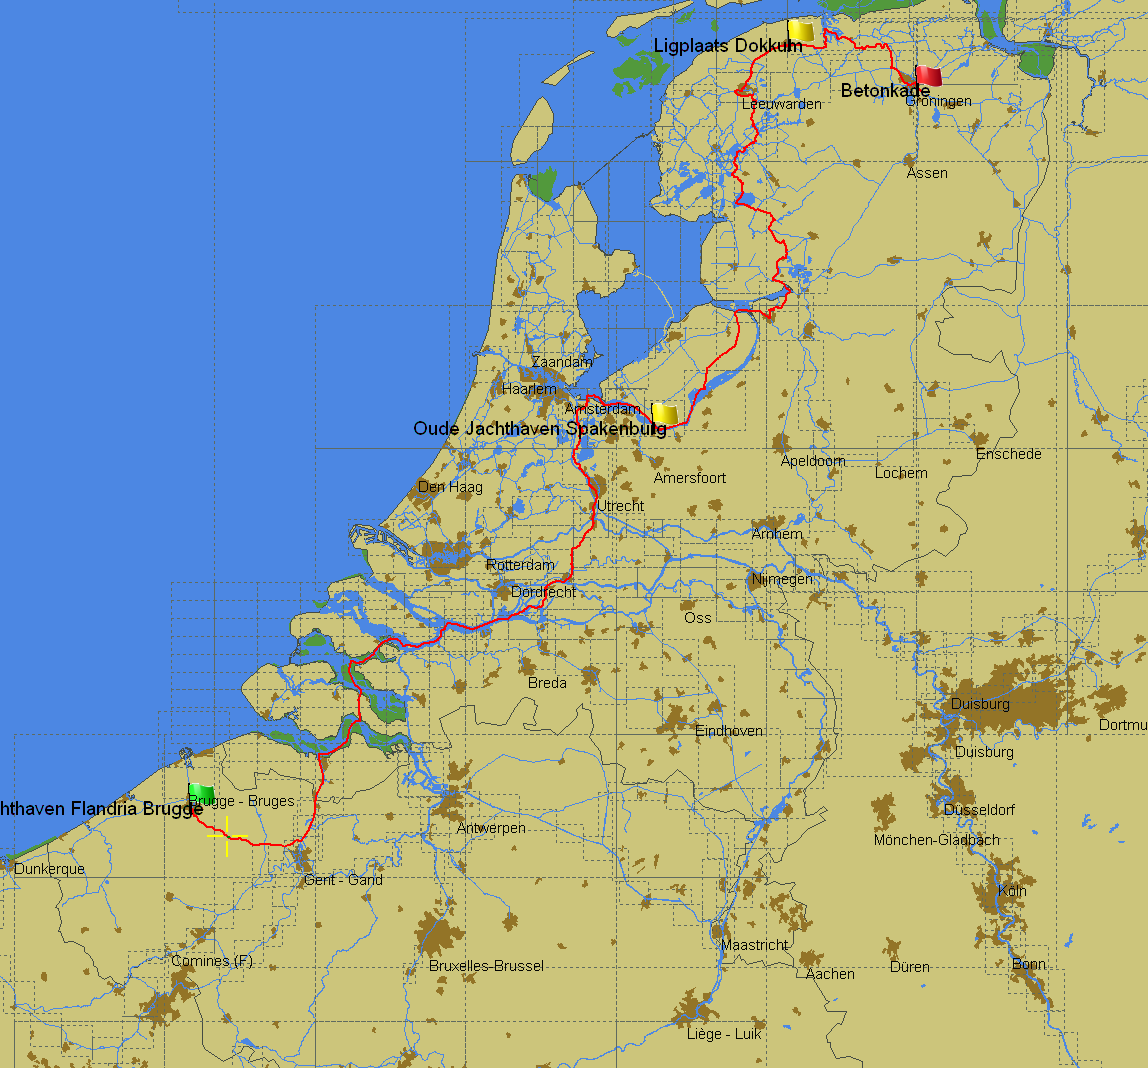 Groningen (NL) to Brugge (BE) - tourist route by PC Navigo